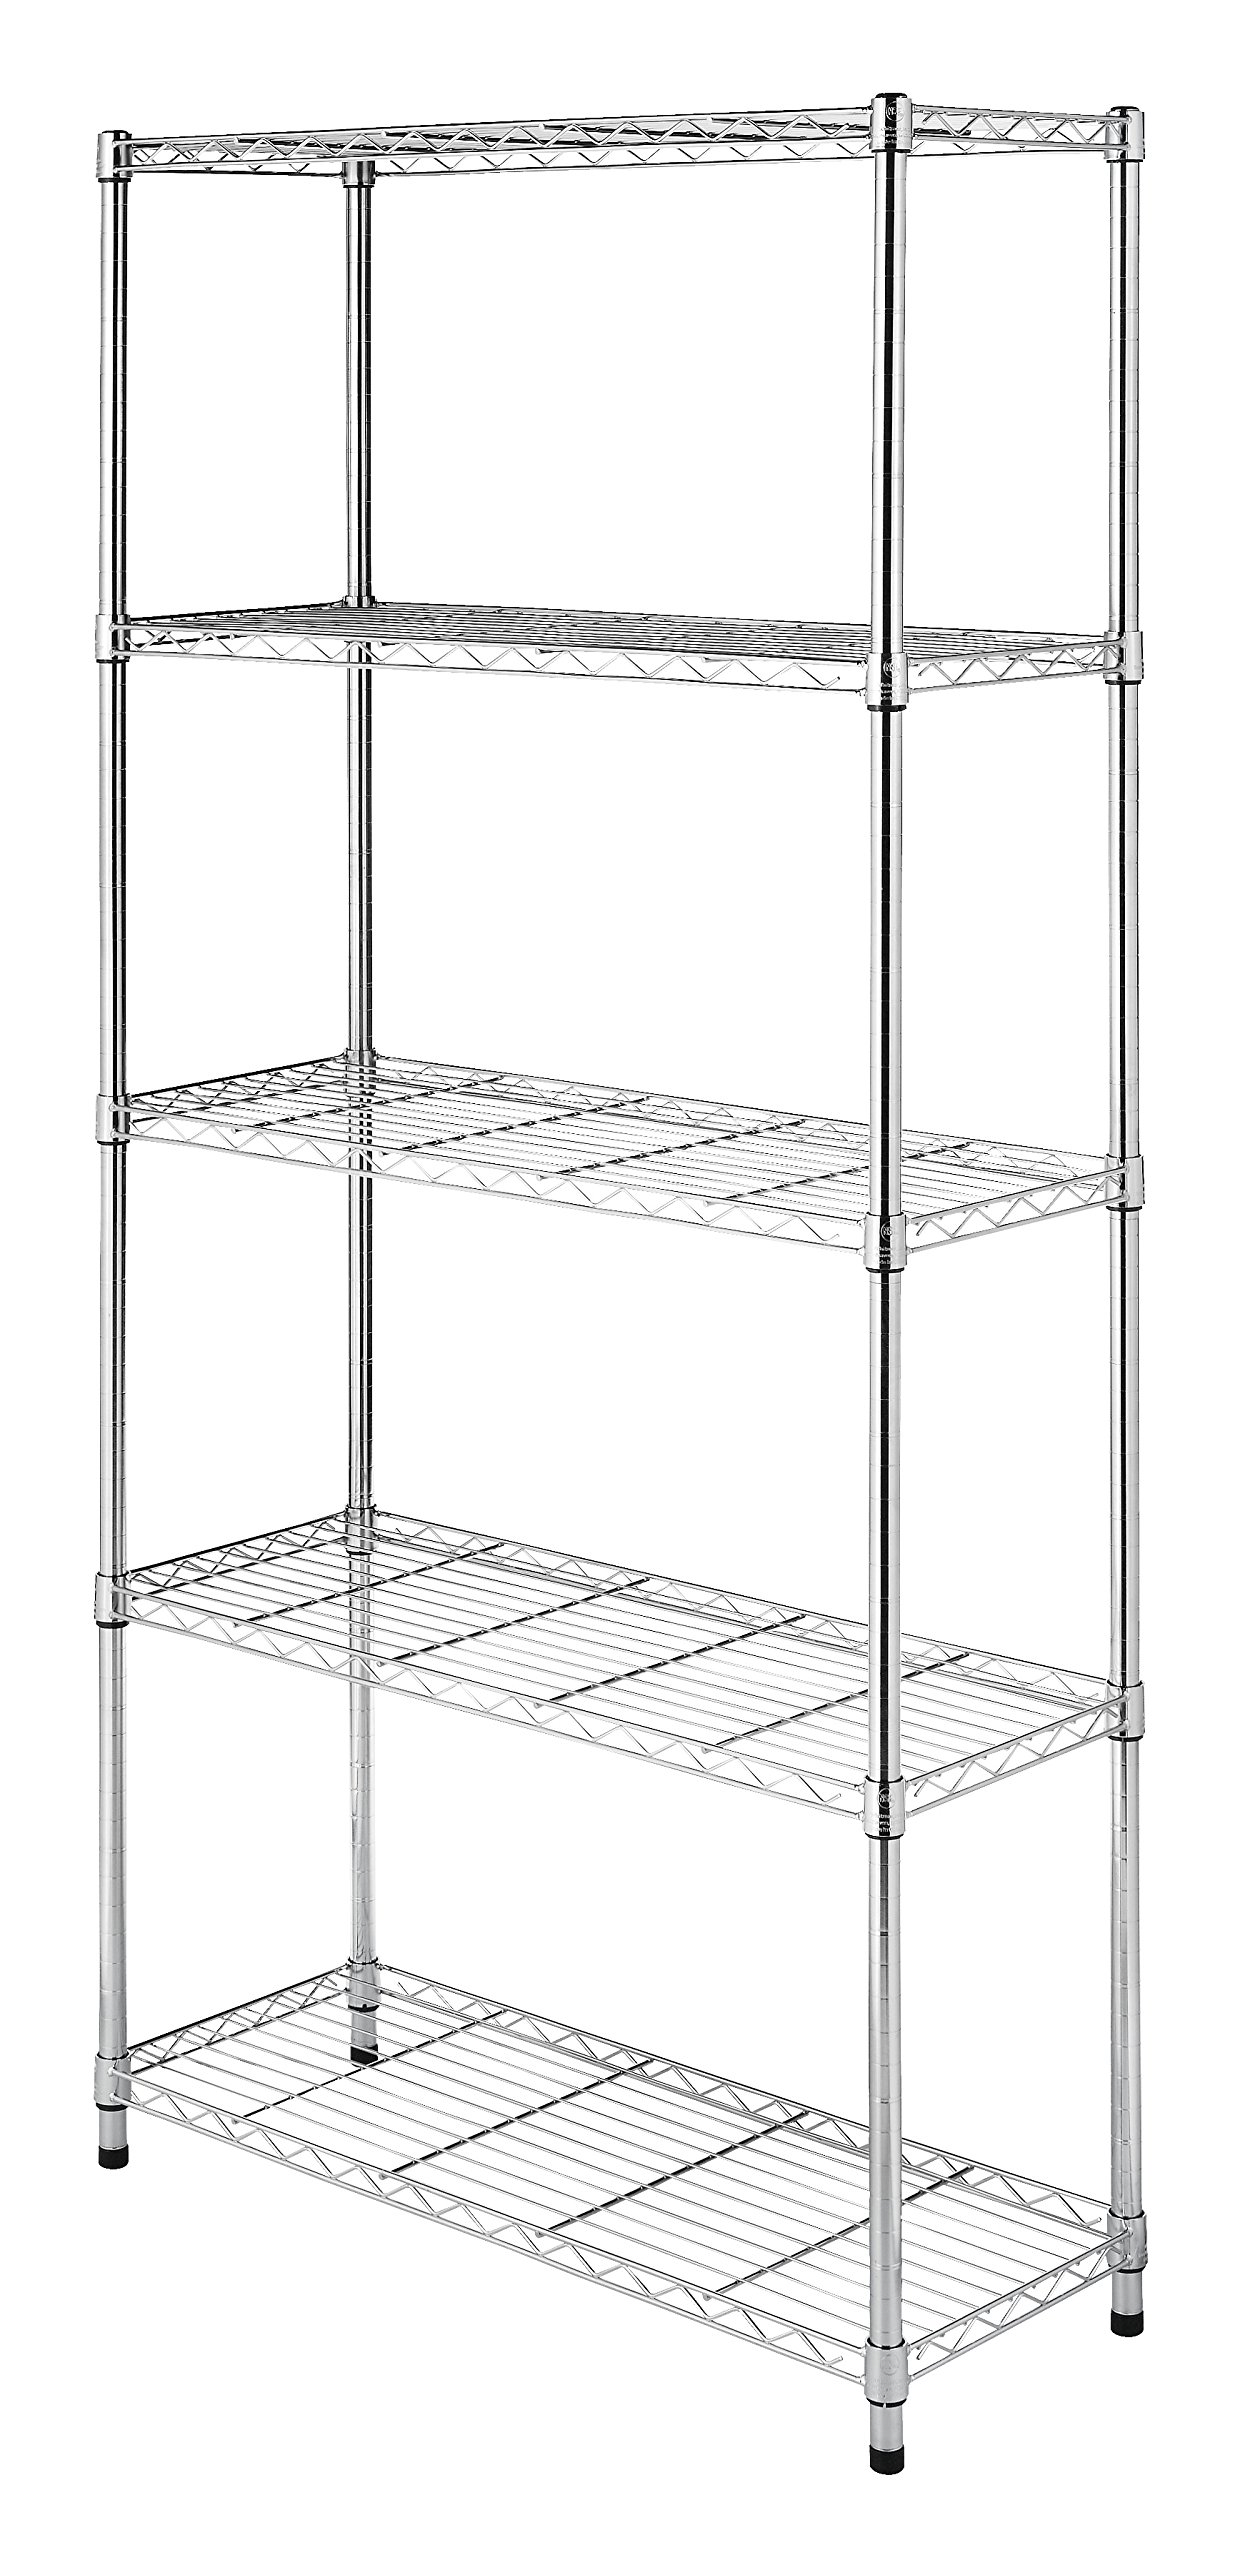 Whitmor Supreme 5 Tier Shelving with Adjustable Shelves and Leveling Feet - Chrome by Whitmor